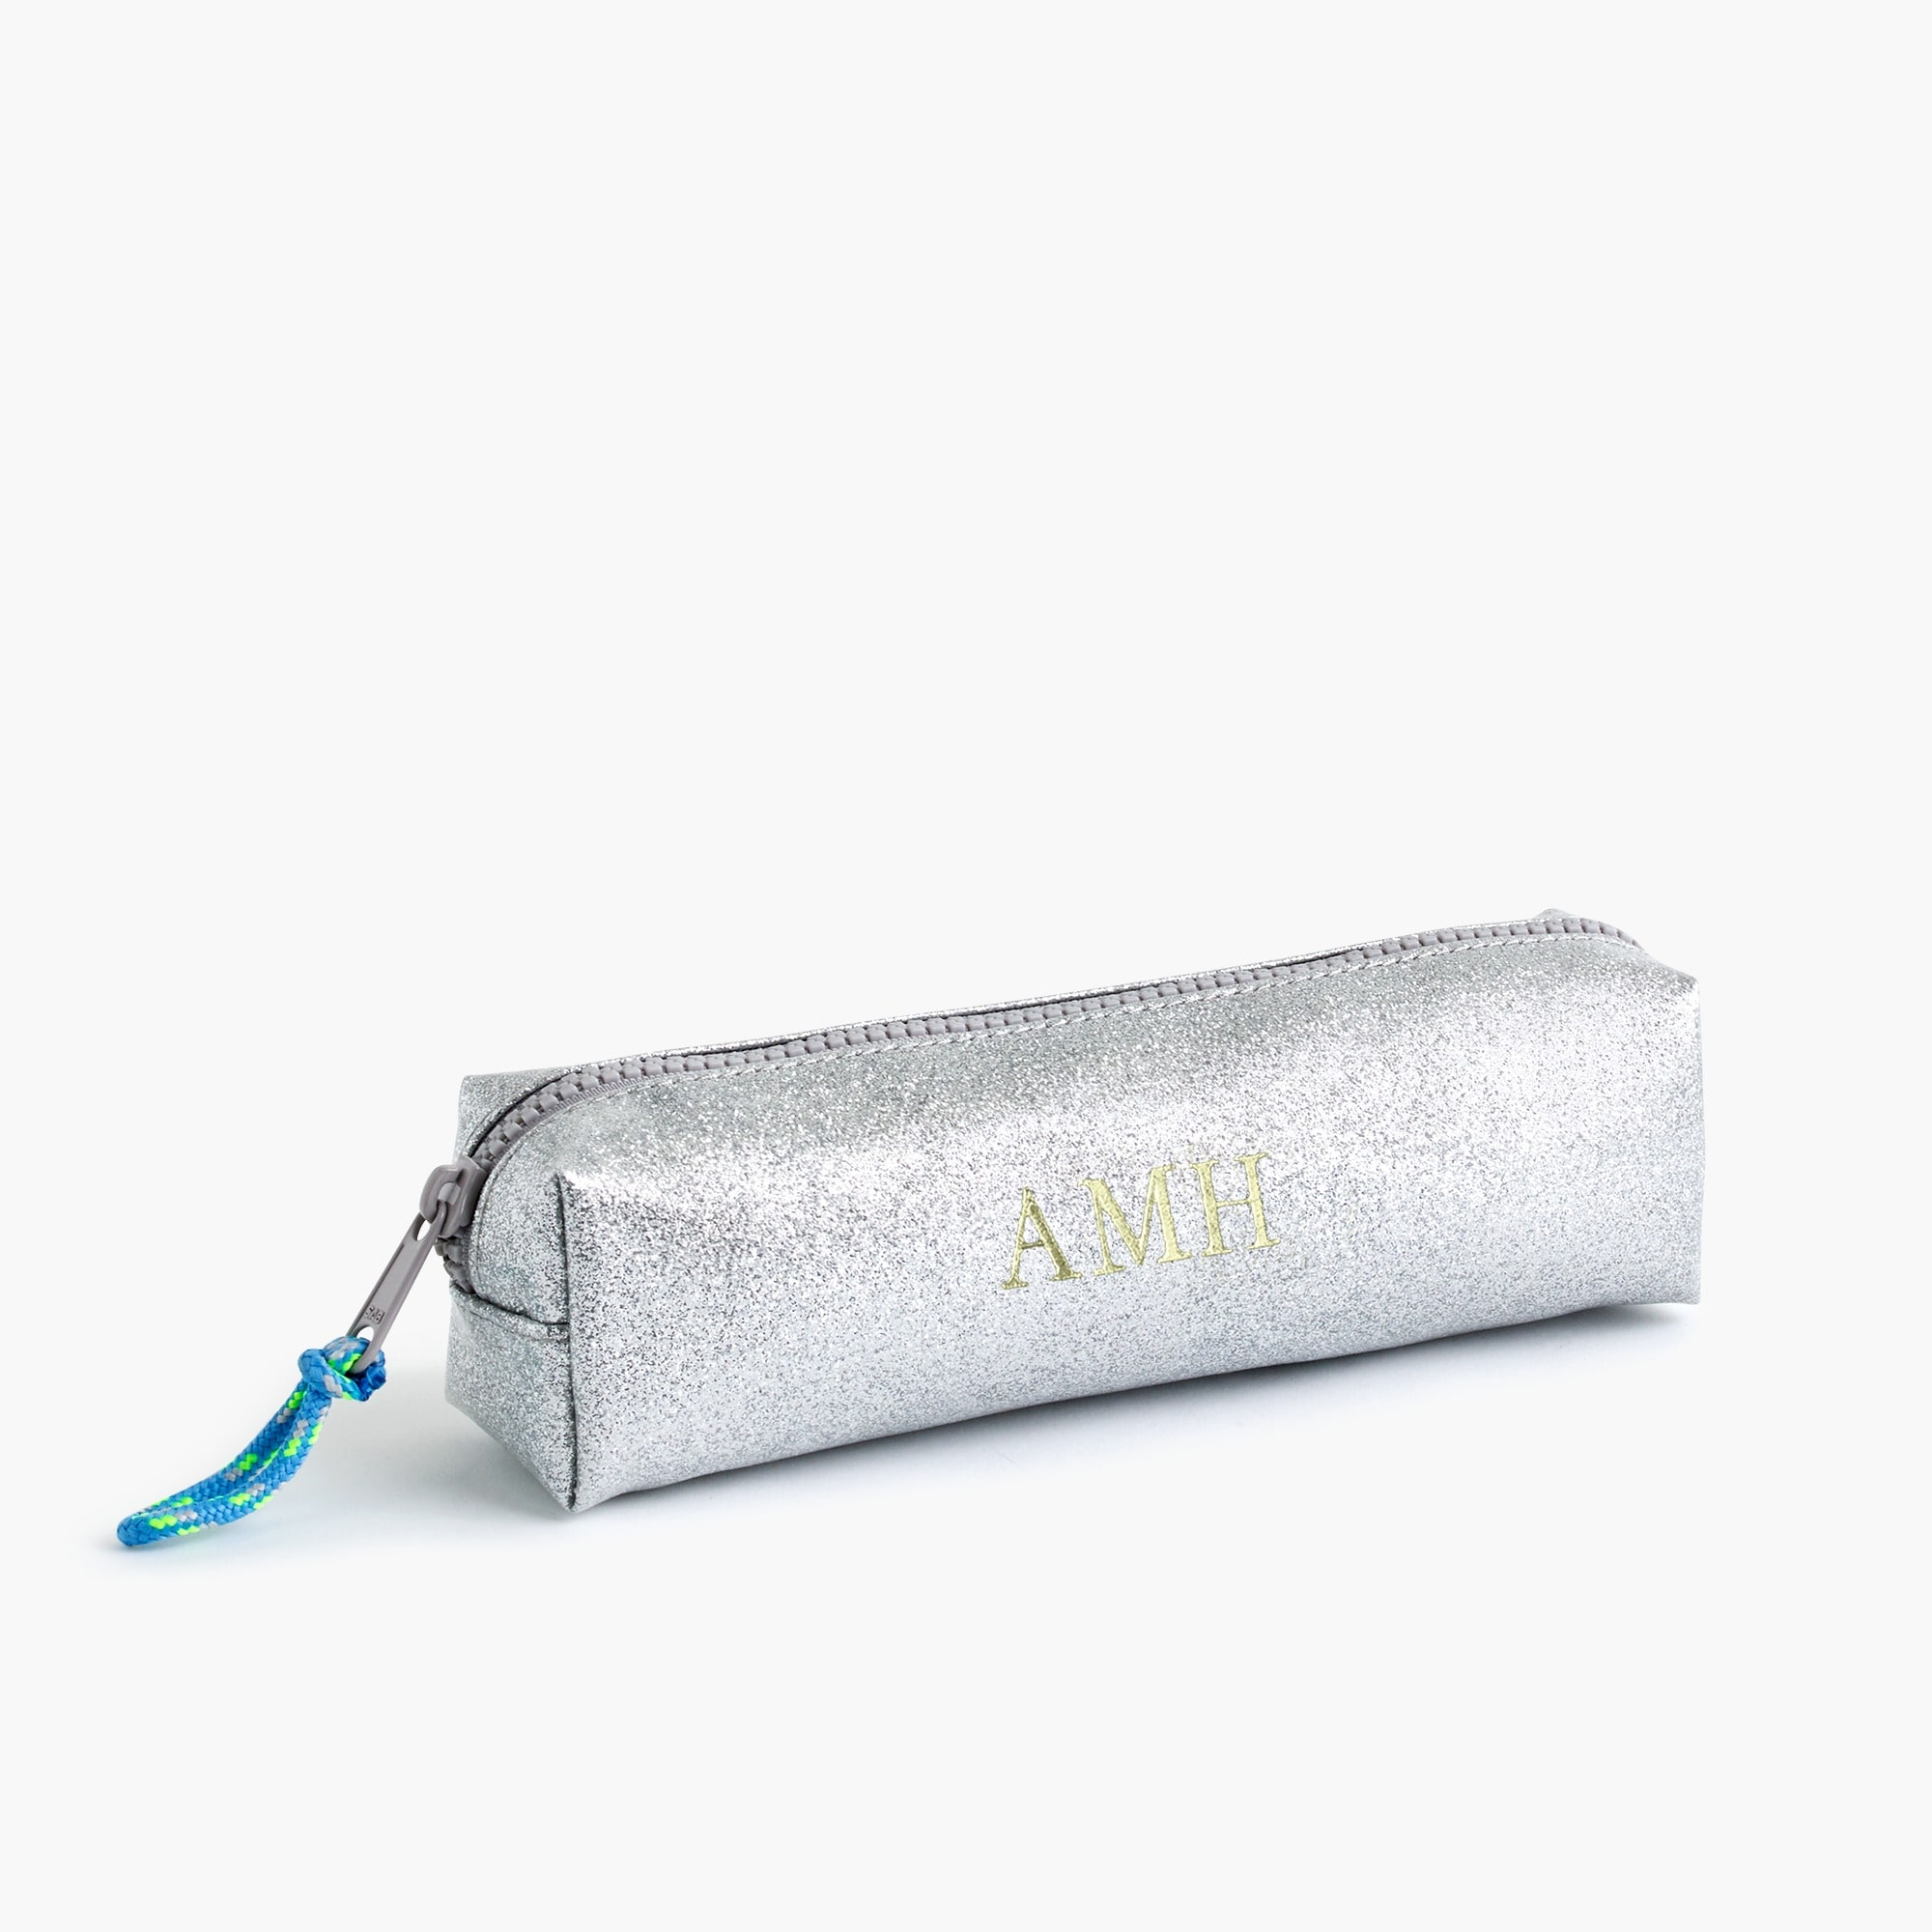 Image 1 for Girls' glitter pencil case